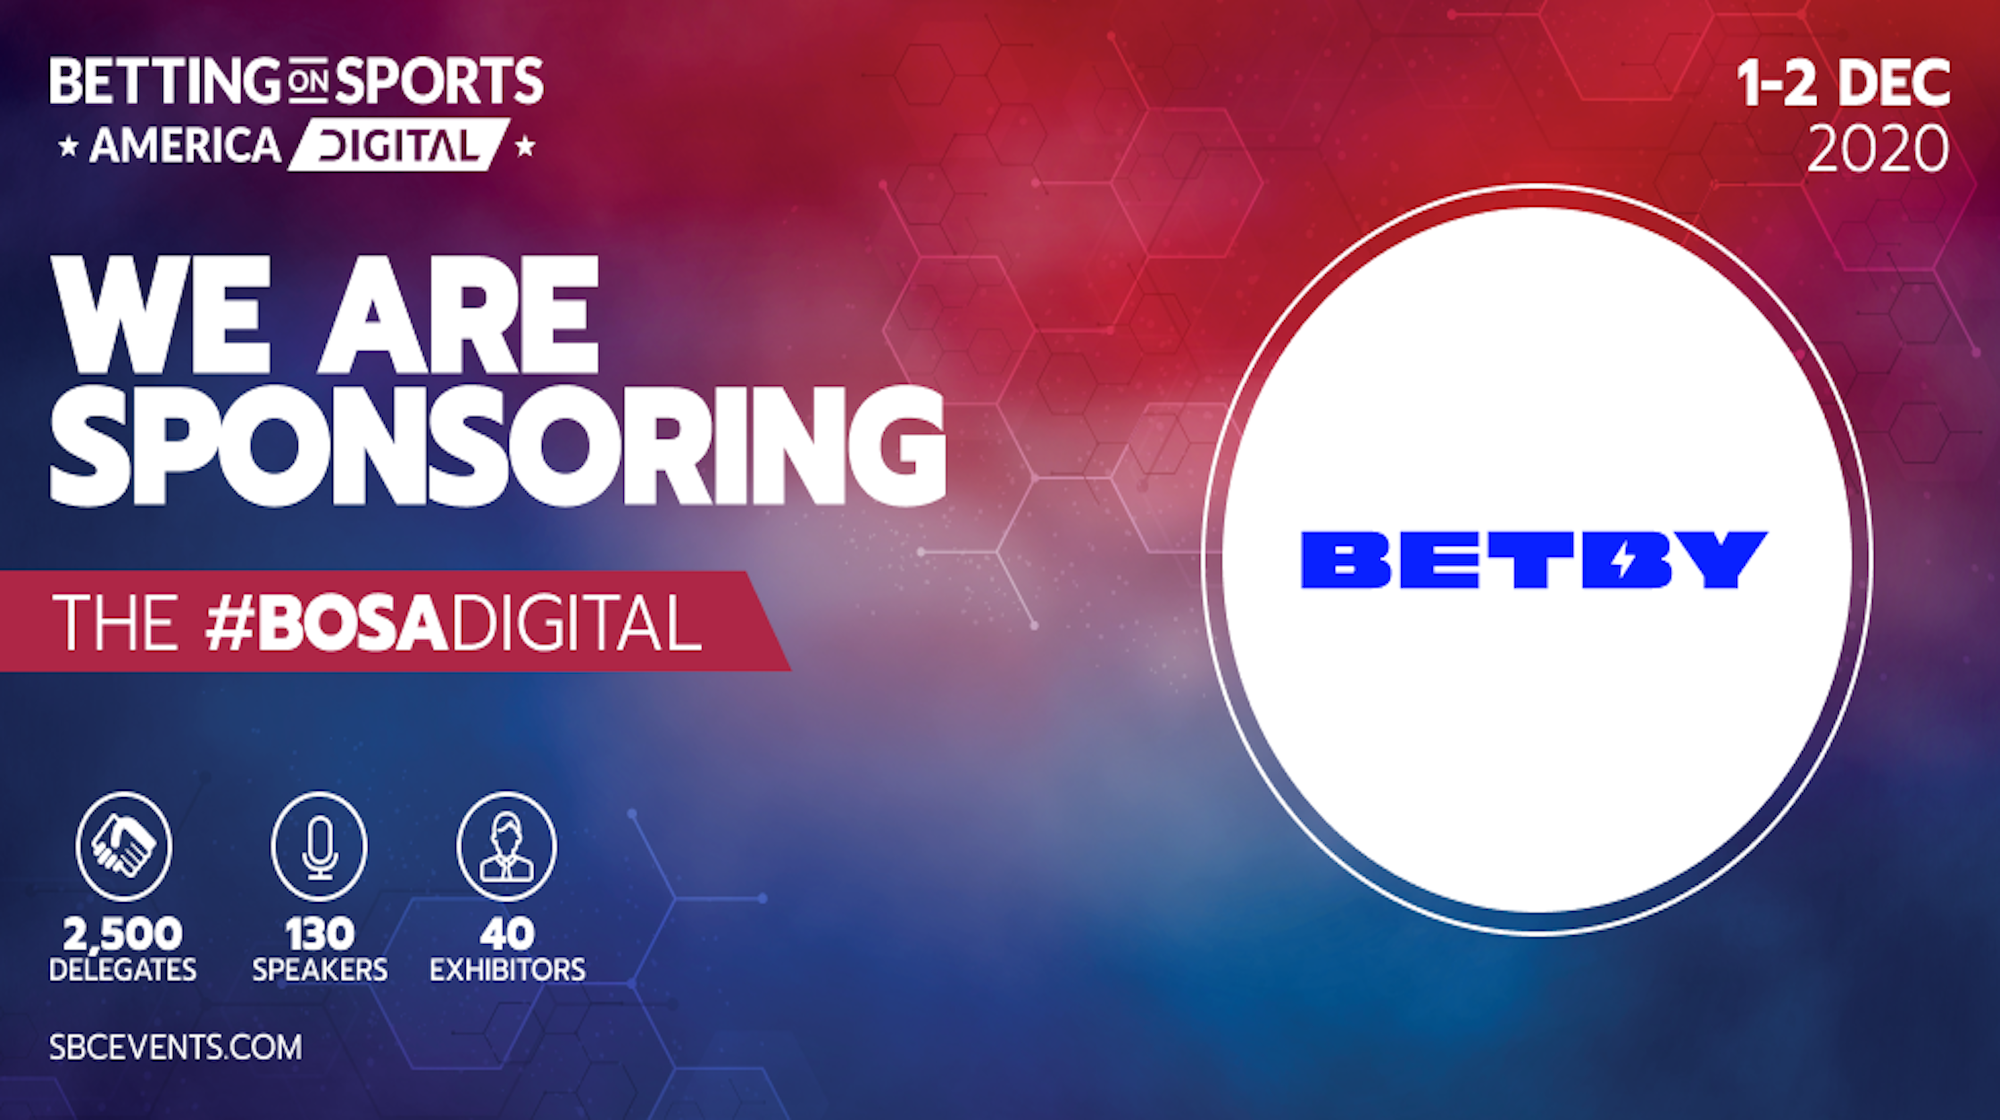 BETBY raises US profile with SBC Betting on Sports America sponsorship